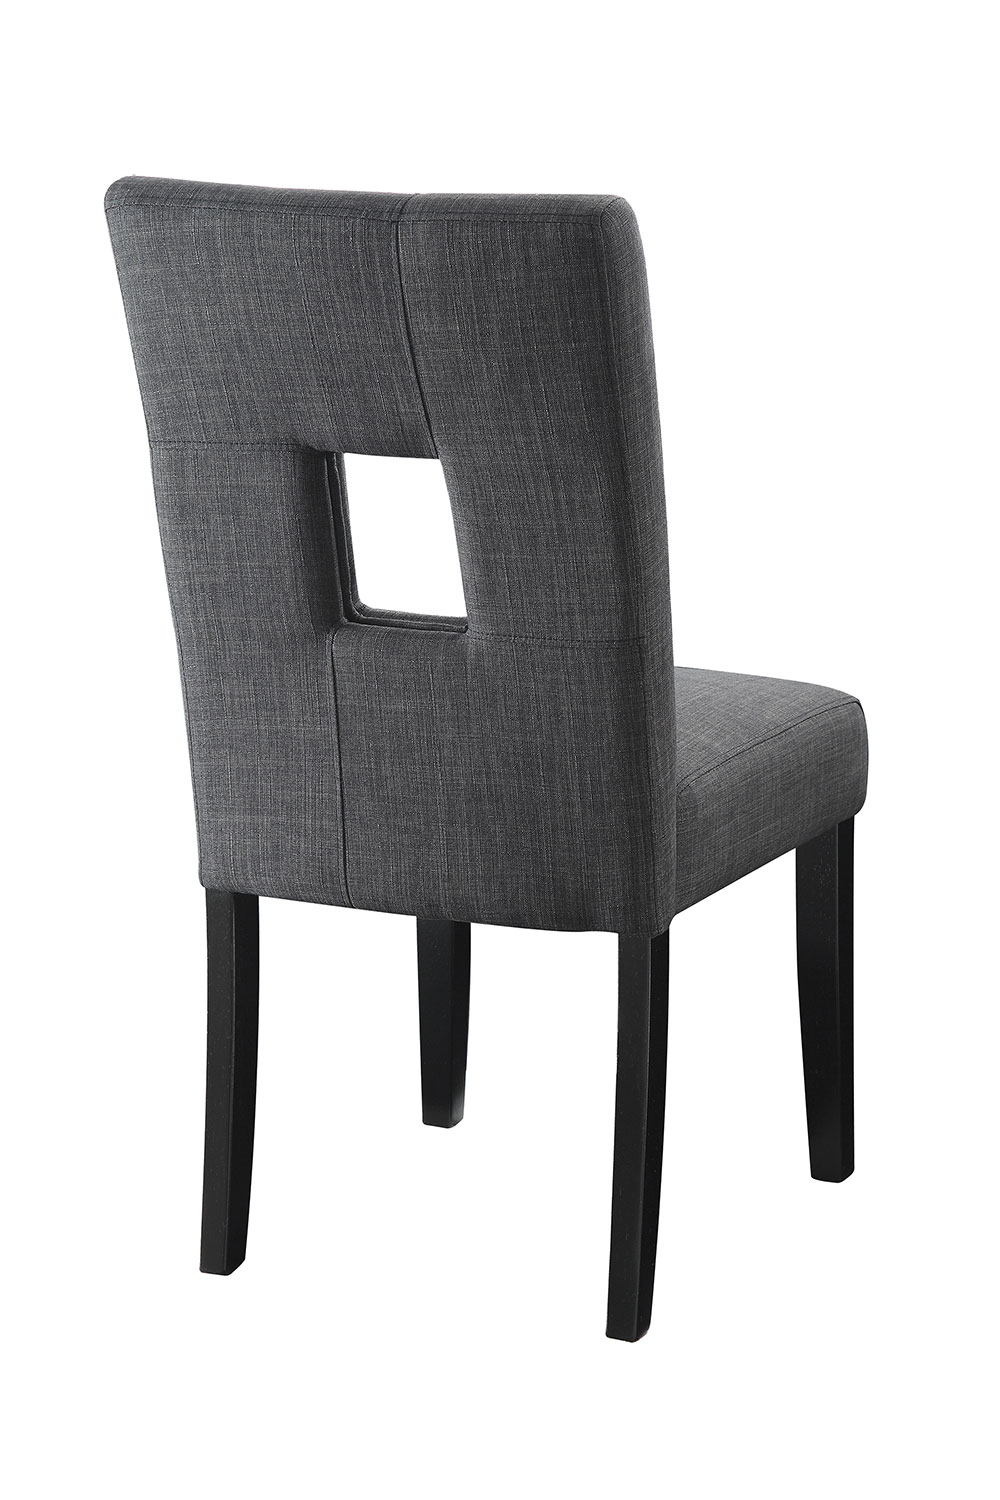 Coaster Andenne Dining Chair - Grey/Black